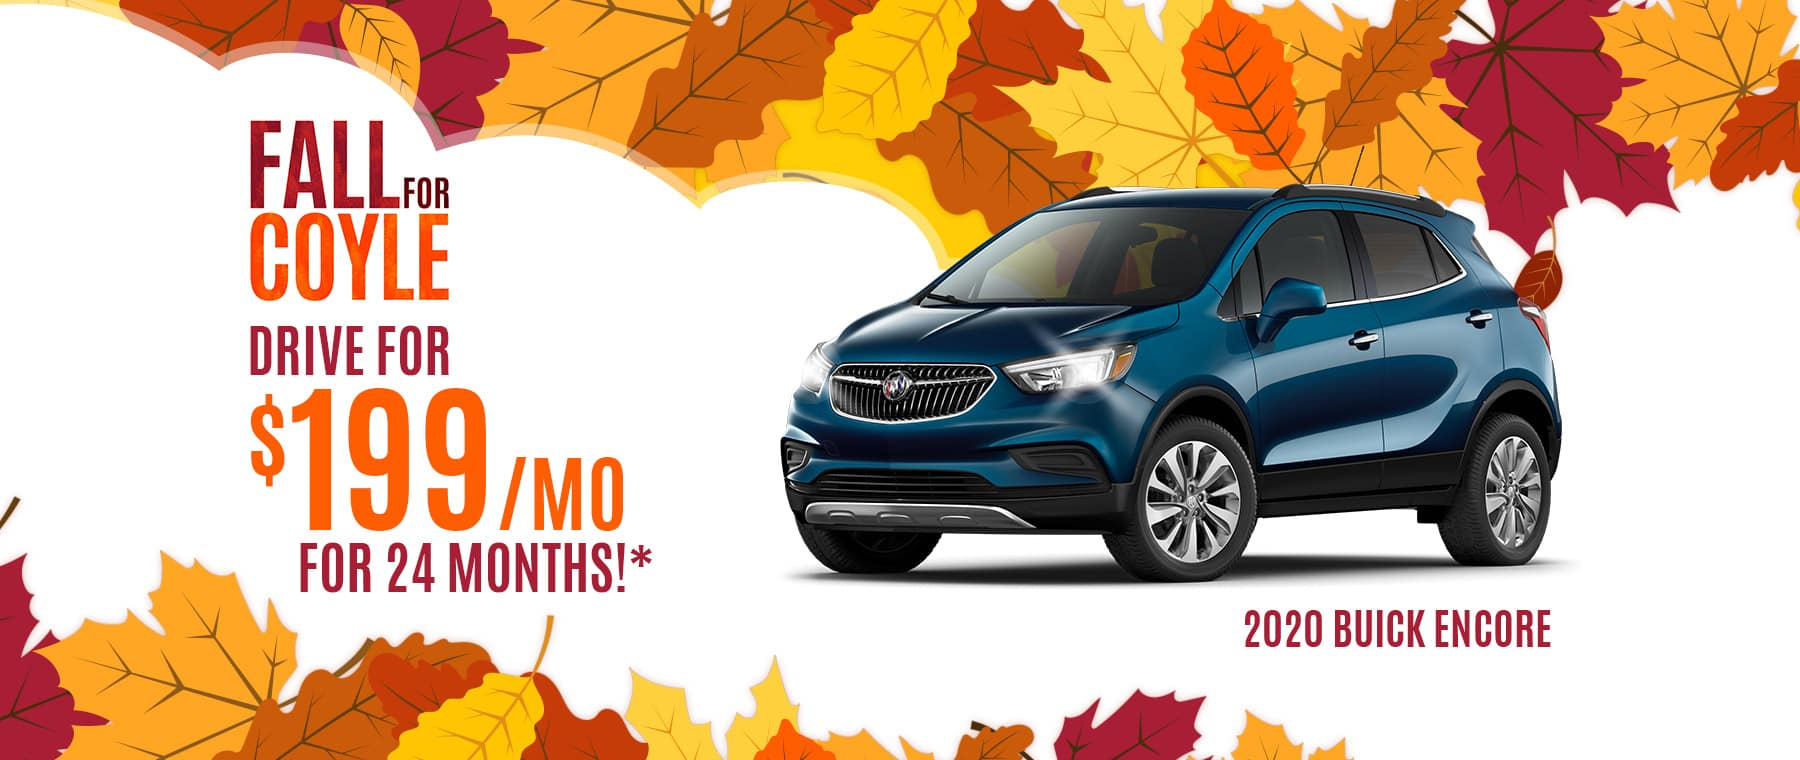 Lease Special on a New Buick Encore near Watson, Indiana